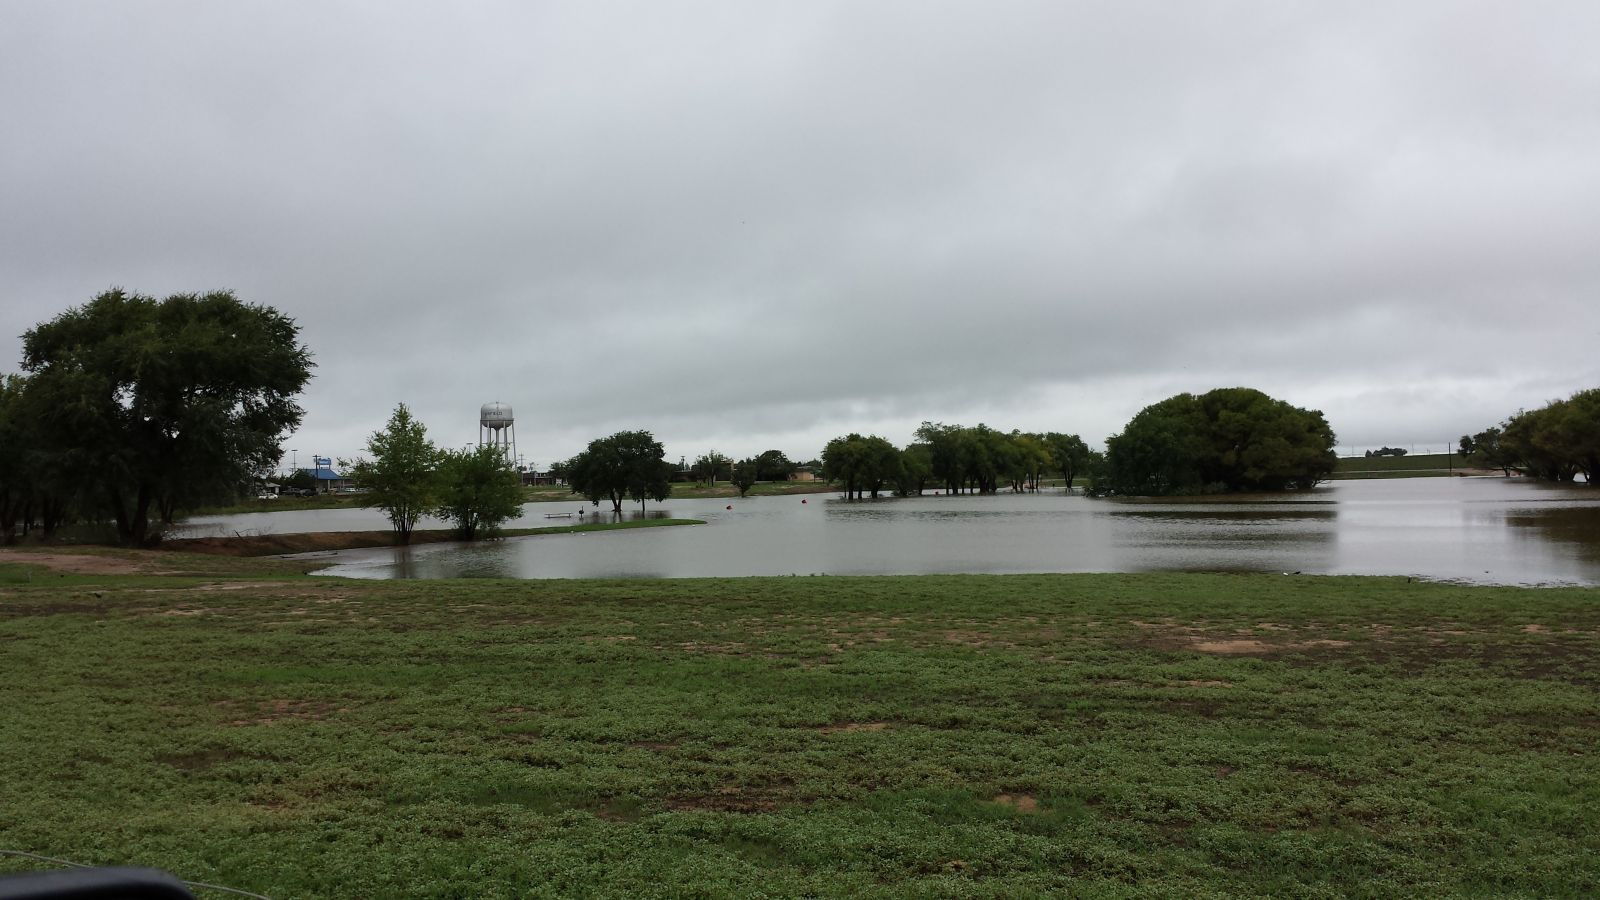 Nws Lubbock Tx Rain Event September 14 21st 2014 About Contact Disclaimer Dmca Notice Privacy Policy Flooding Of The Double Mountain Fork Brazos River Along Highway 84 Left And An Over Spilling Playa Lake In Brownfield Right On Saturday